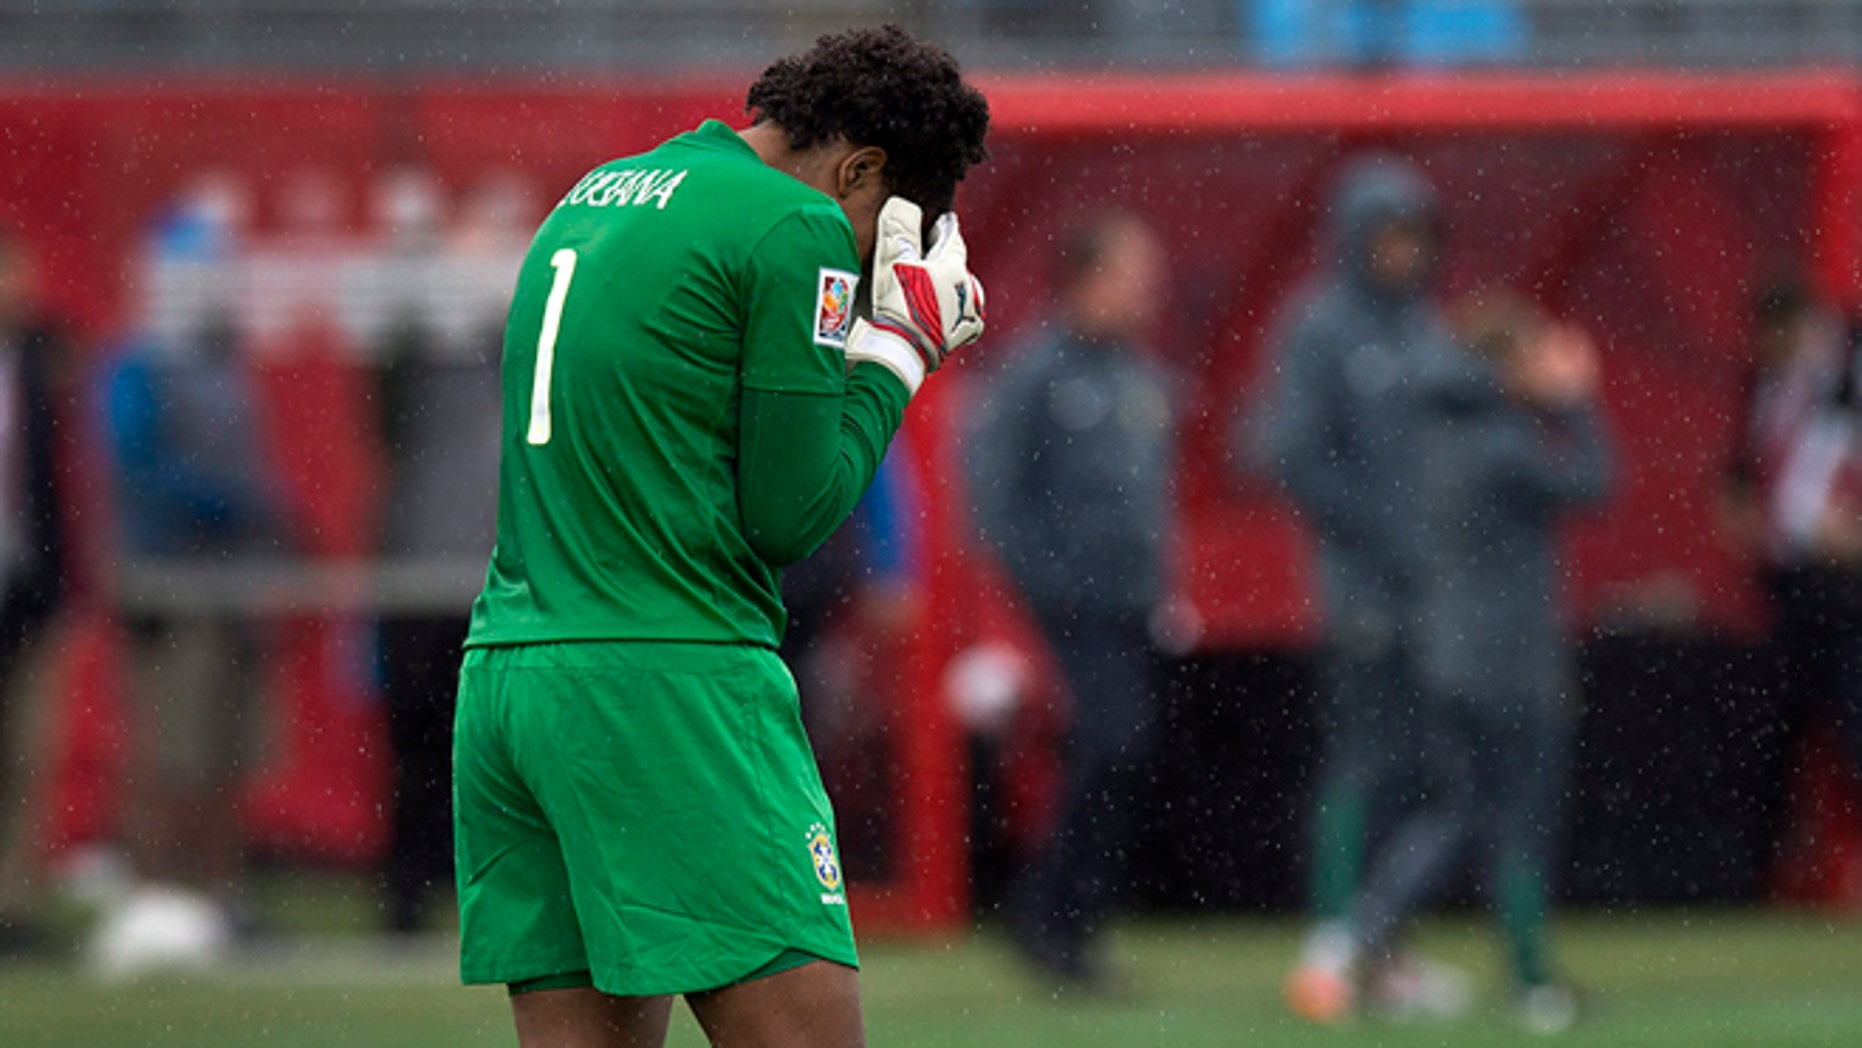 Brazilian goalkeeper Luciana reacts after losing 1-0 to Australia in FIFA Women's World Cup soccer in Moncton, New Brunswick, Canada, Sunday, June 21, 2015. Australia advances to the quarter-finals. (Andrew Vaughan/The Canadian Press via AP) MANDATORY CREDIT